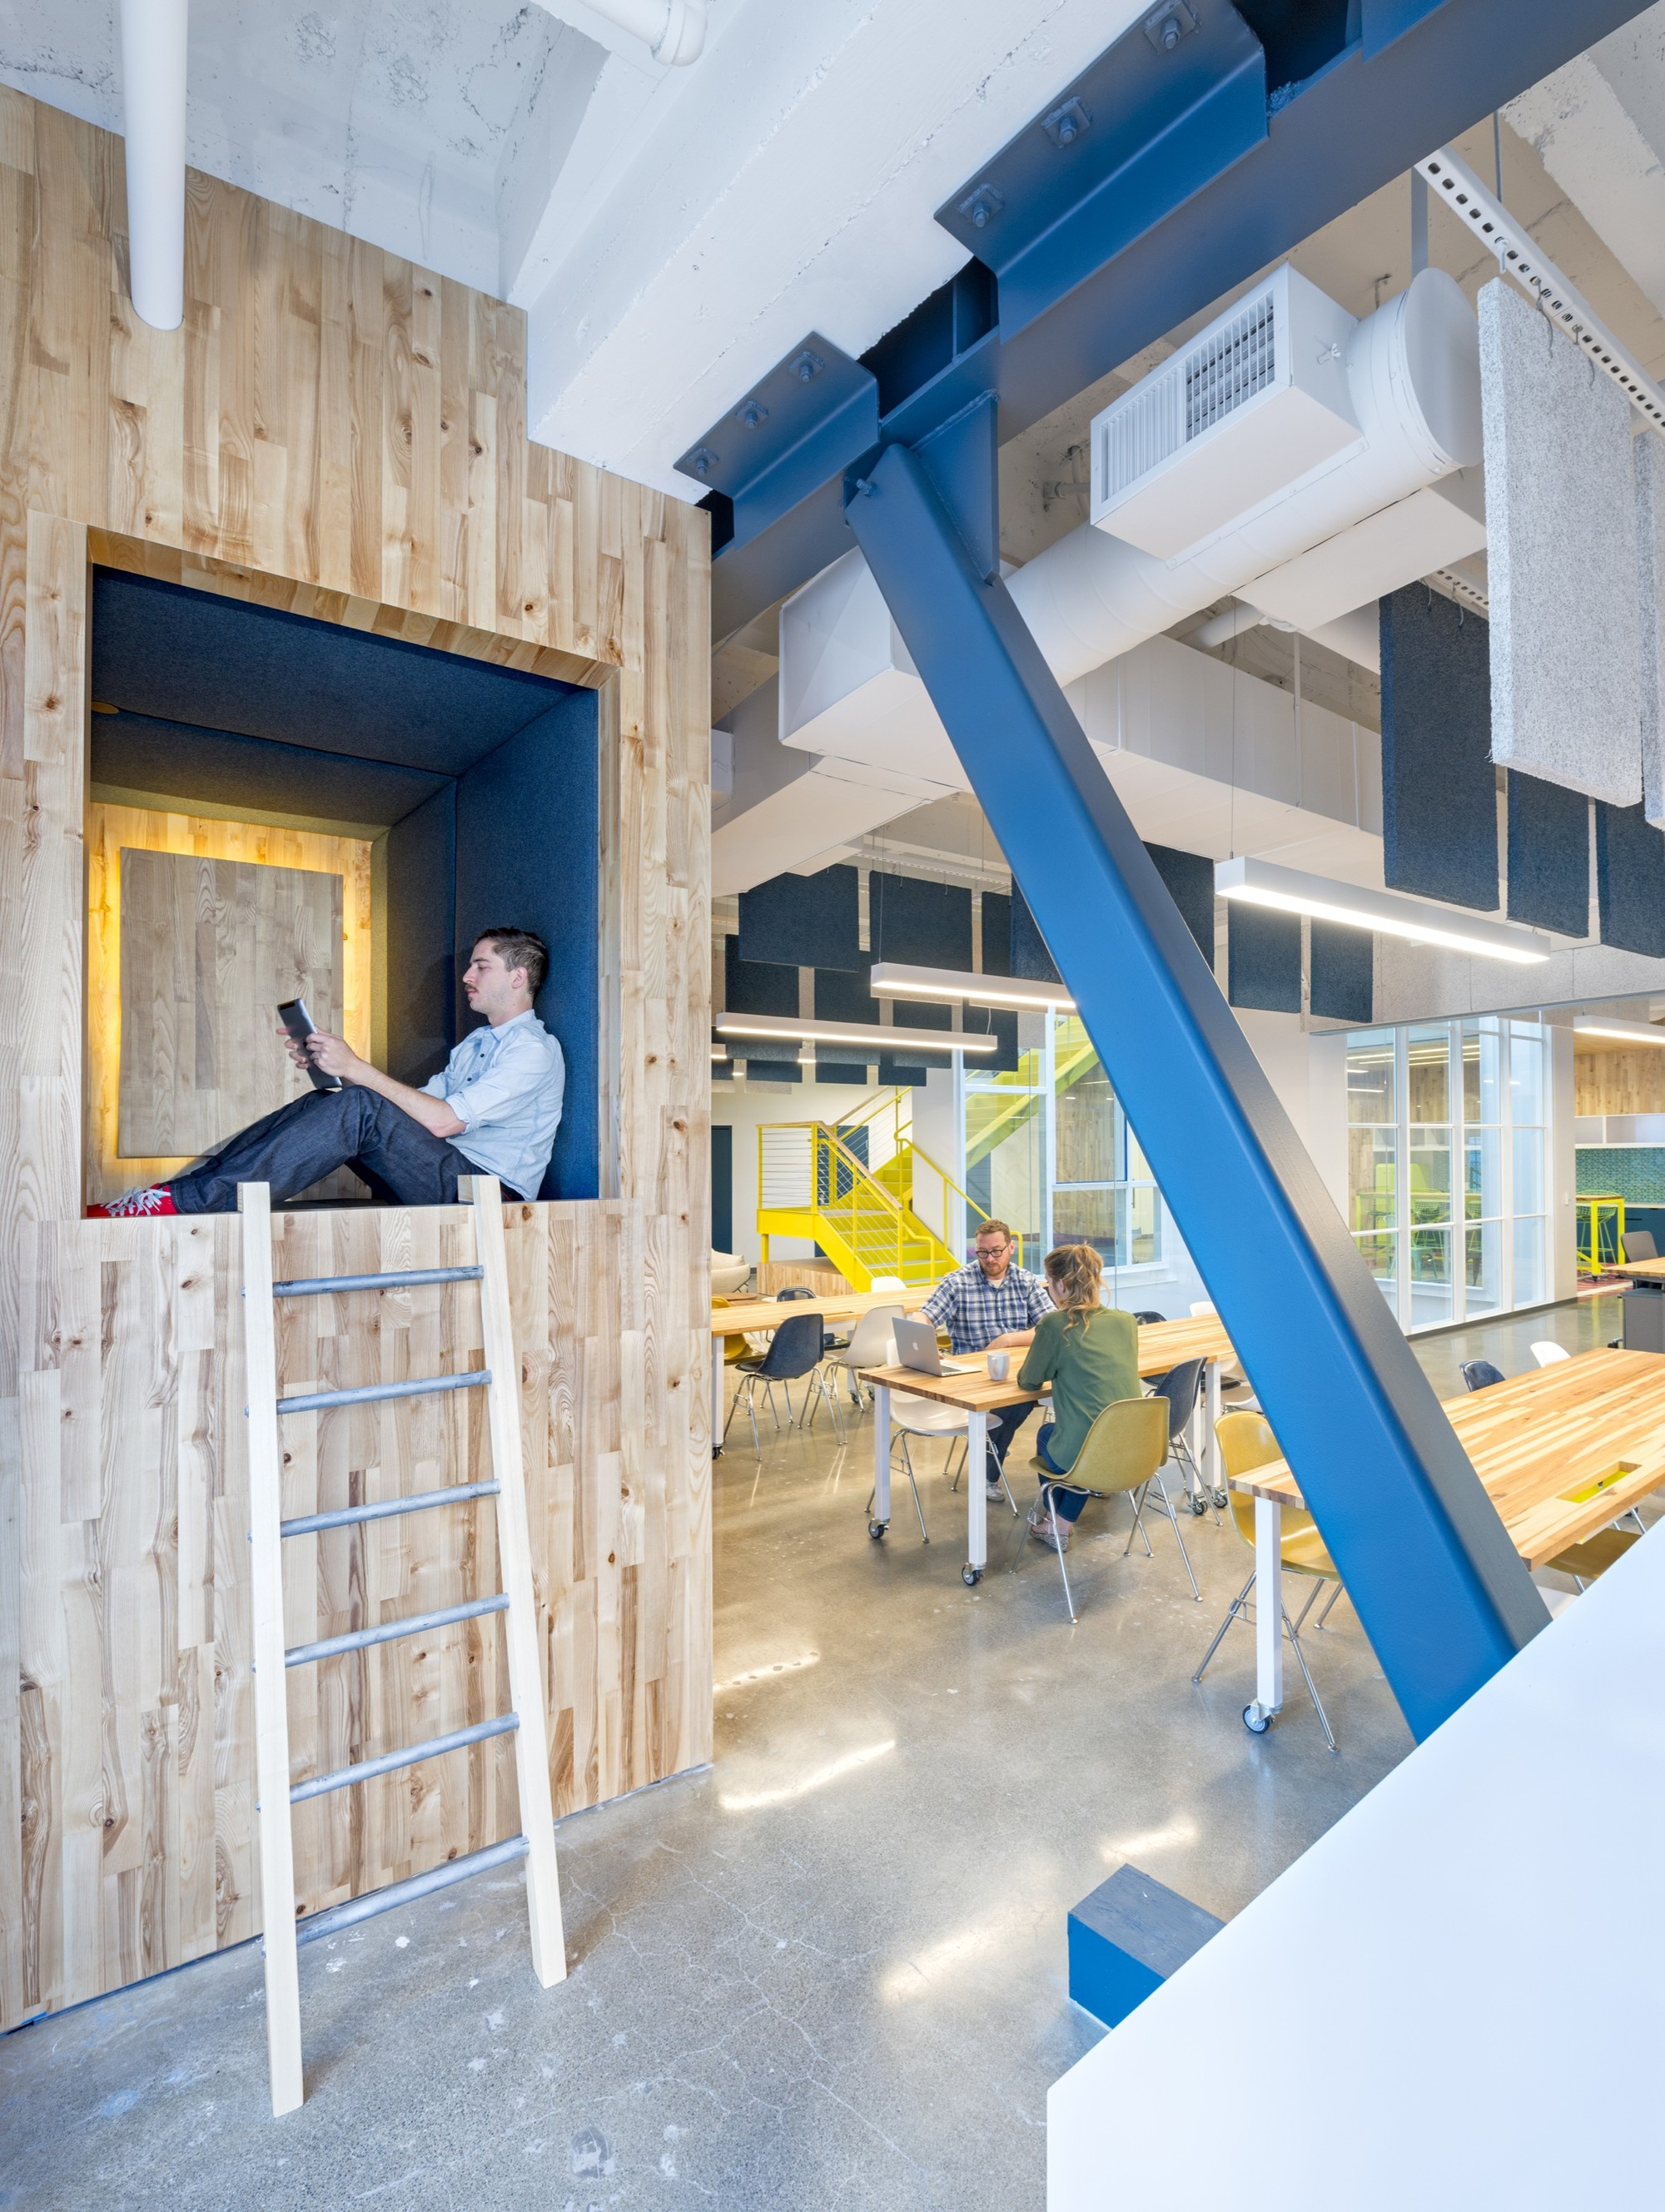 Capital one lab studio o a archdaily for Architecture design company